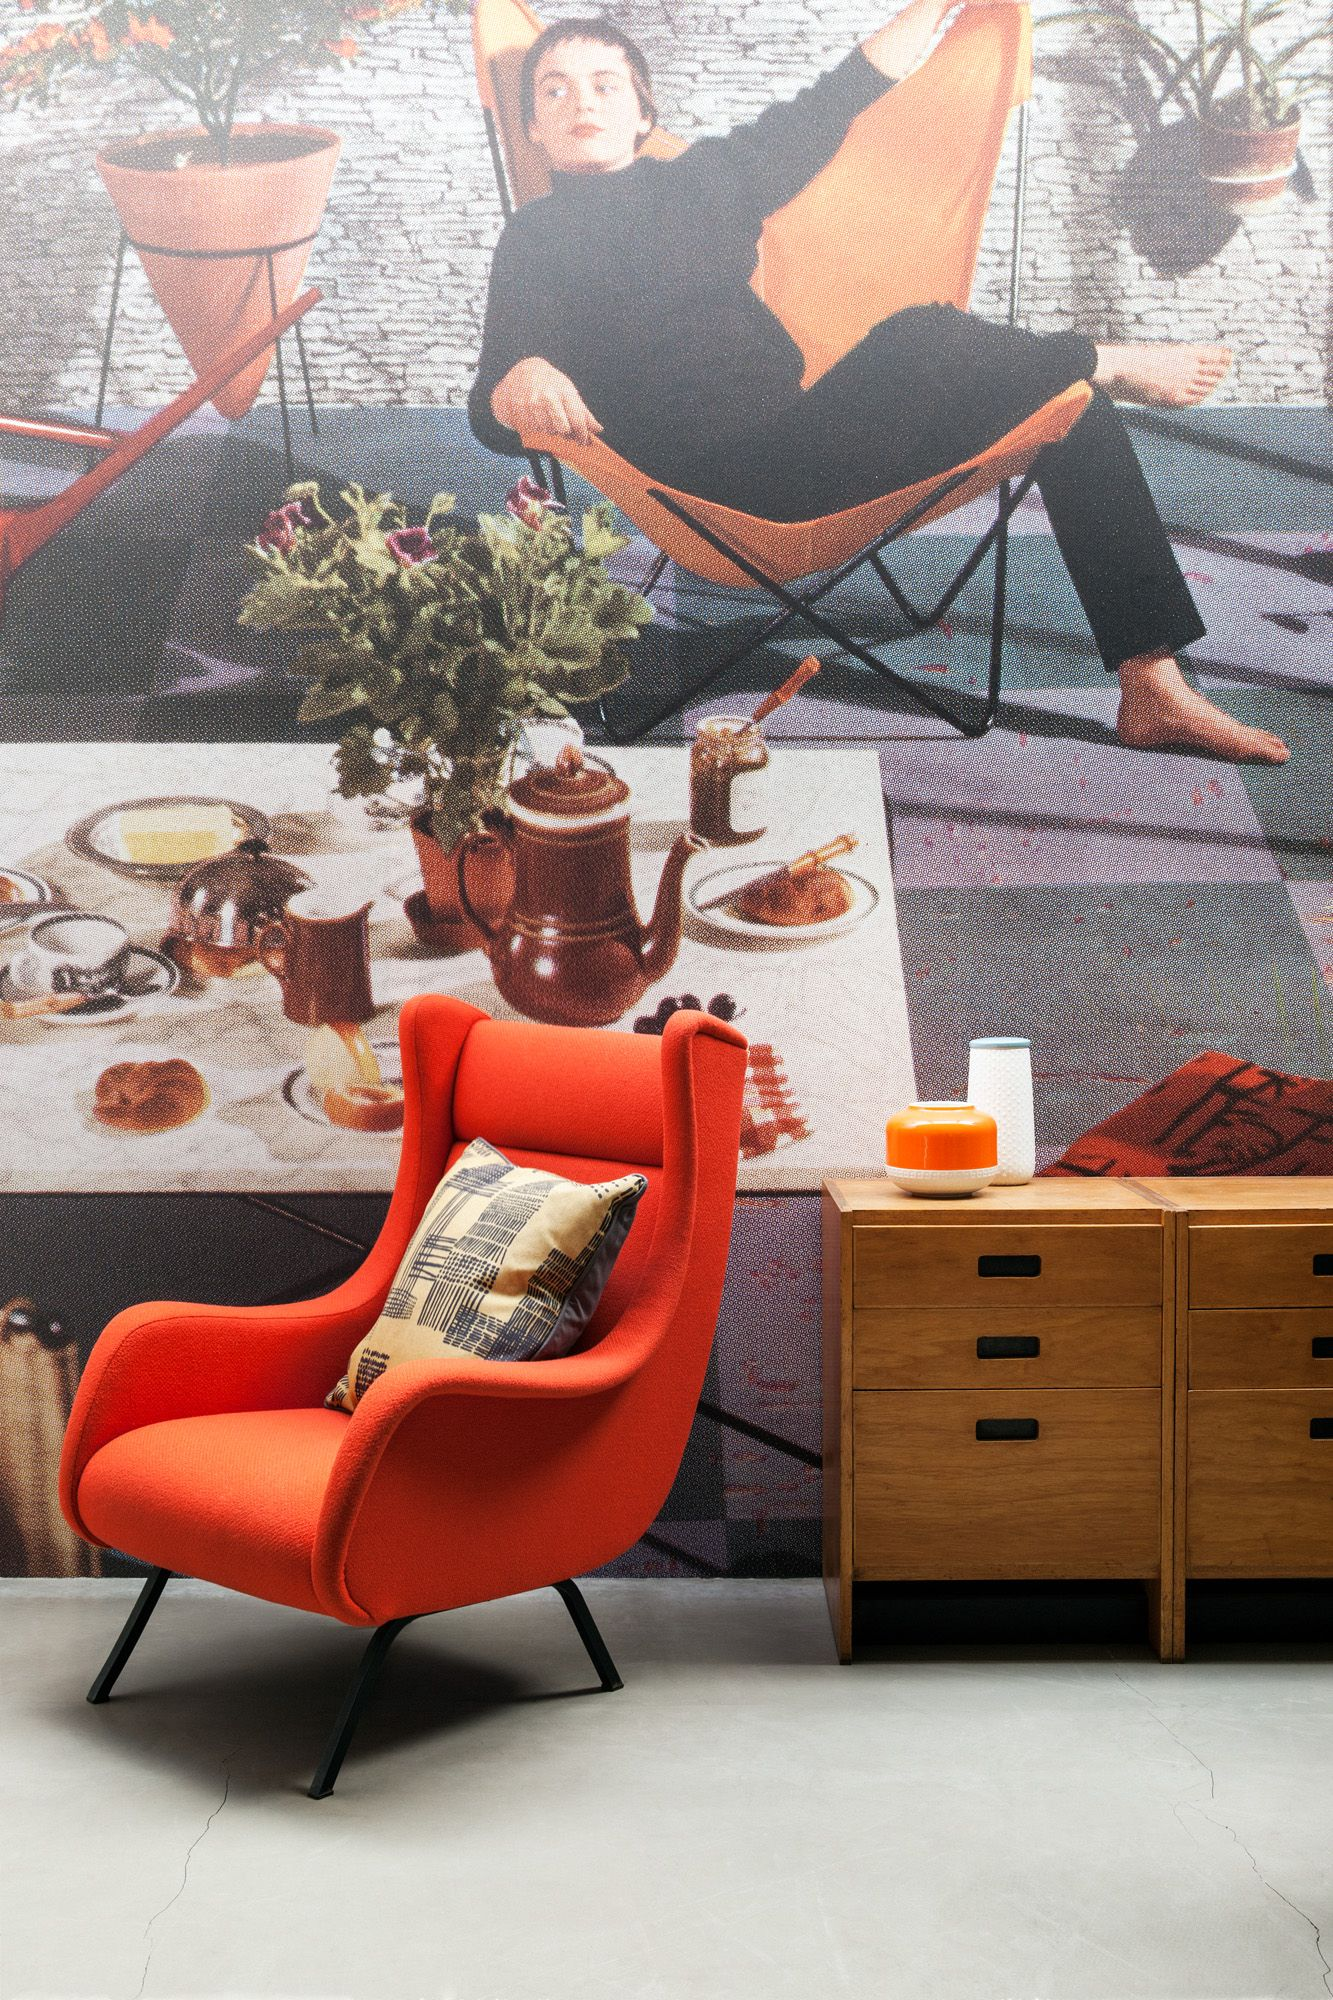 'Vintage Roomset 3' Mural Mid Century Modern Edit, from